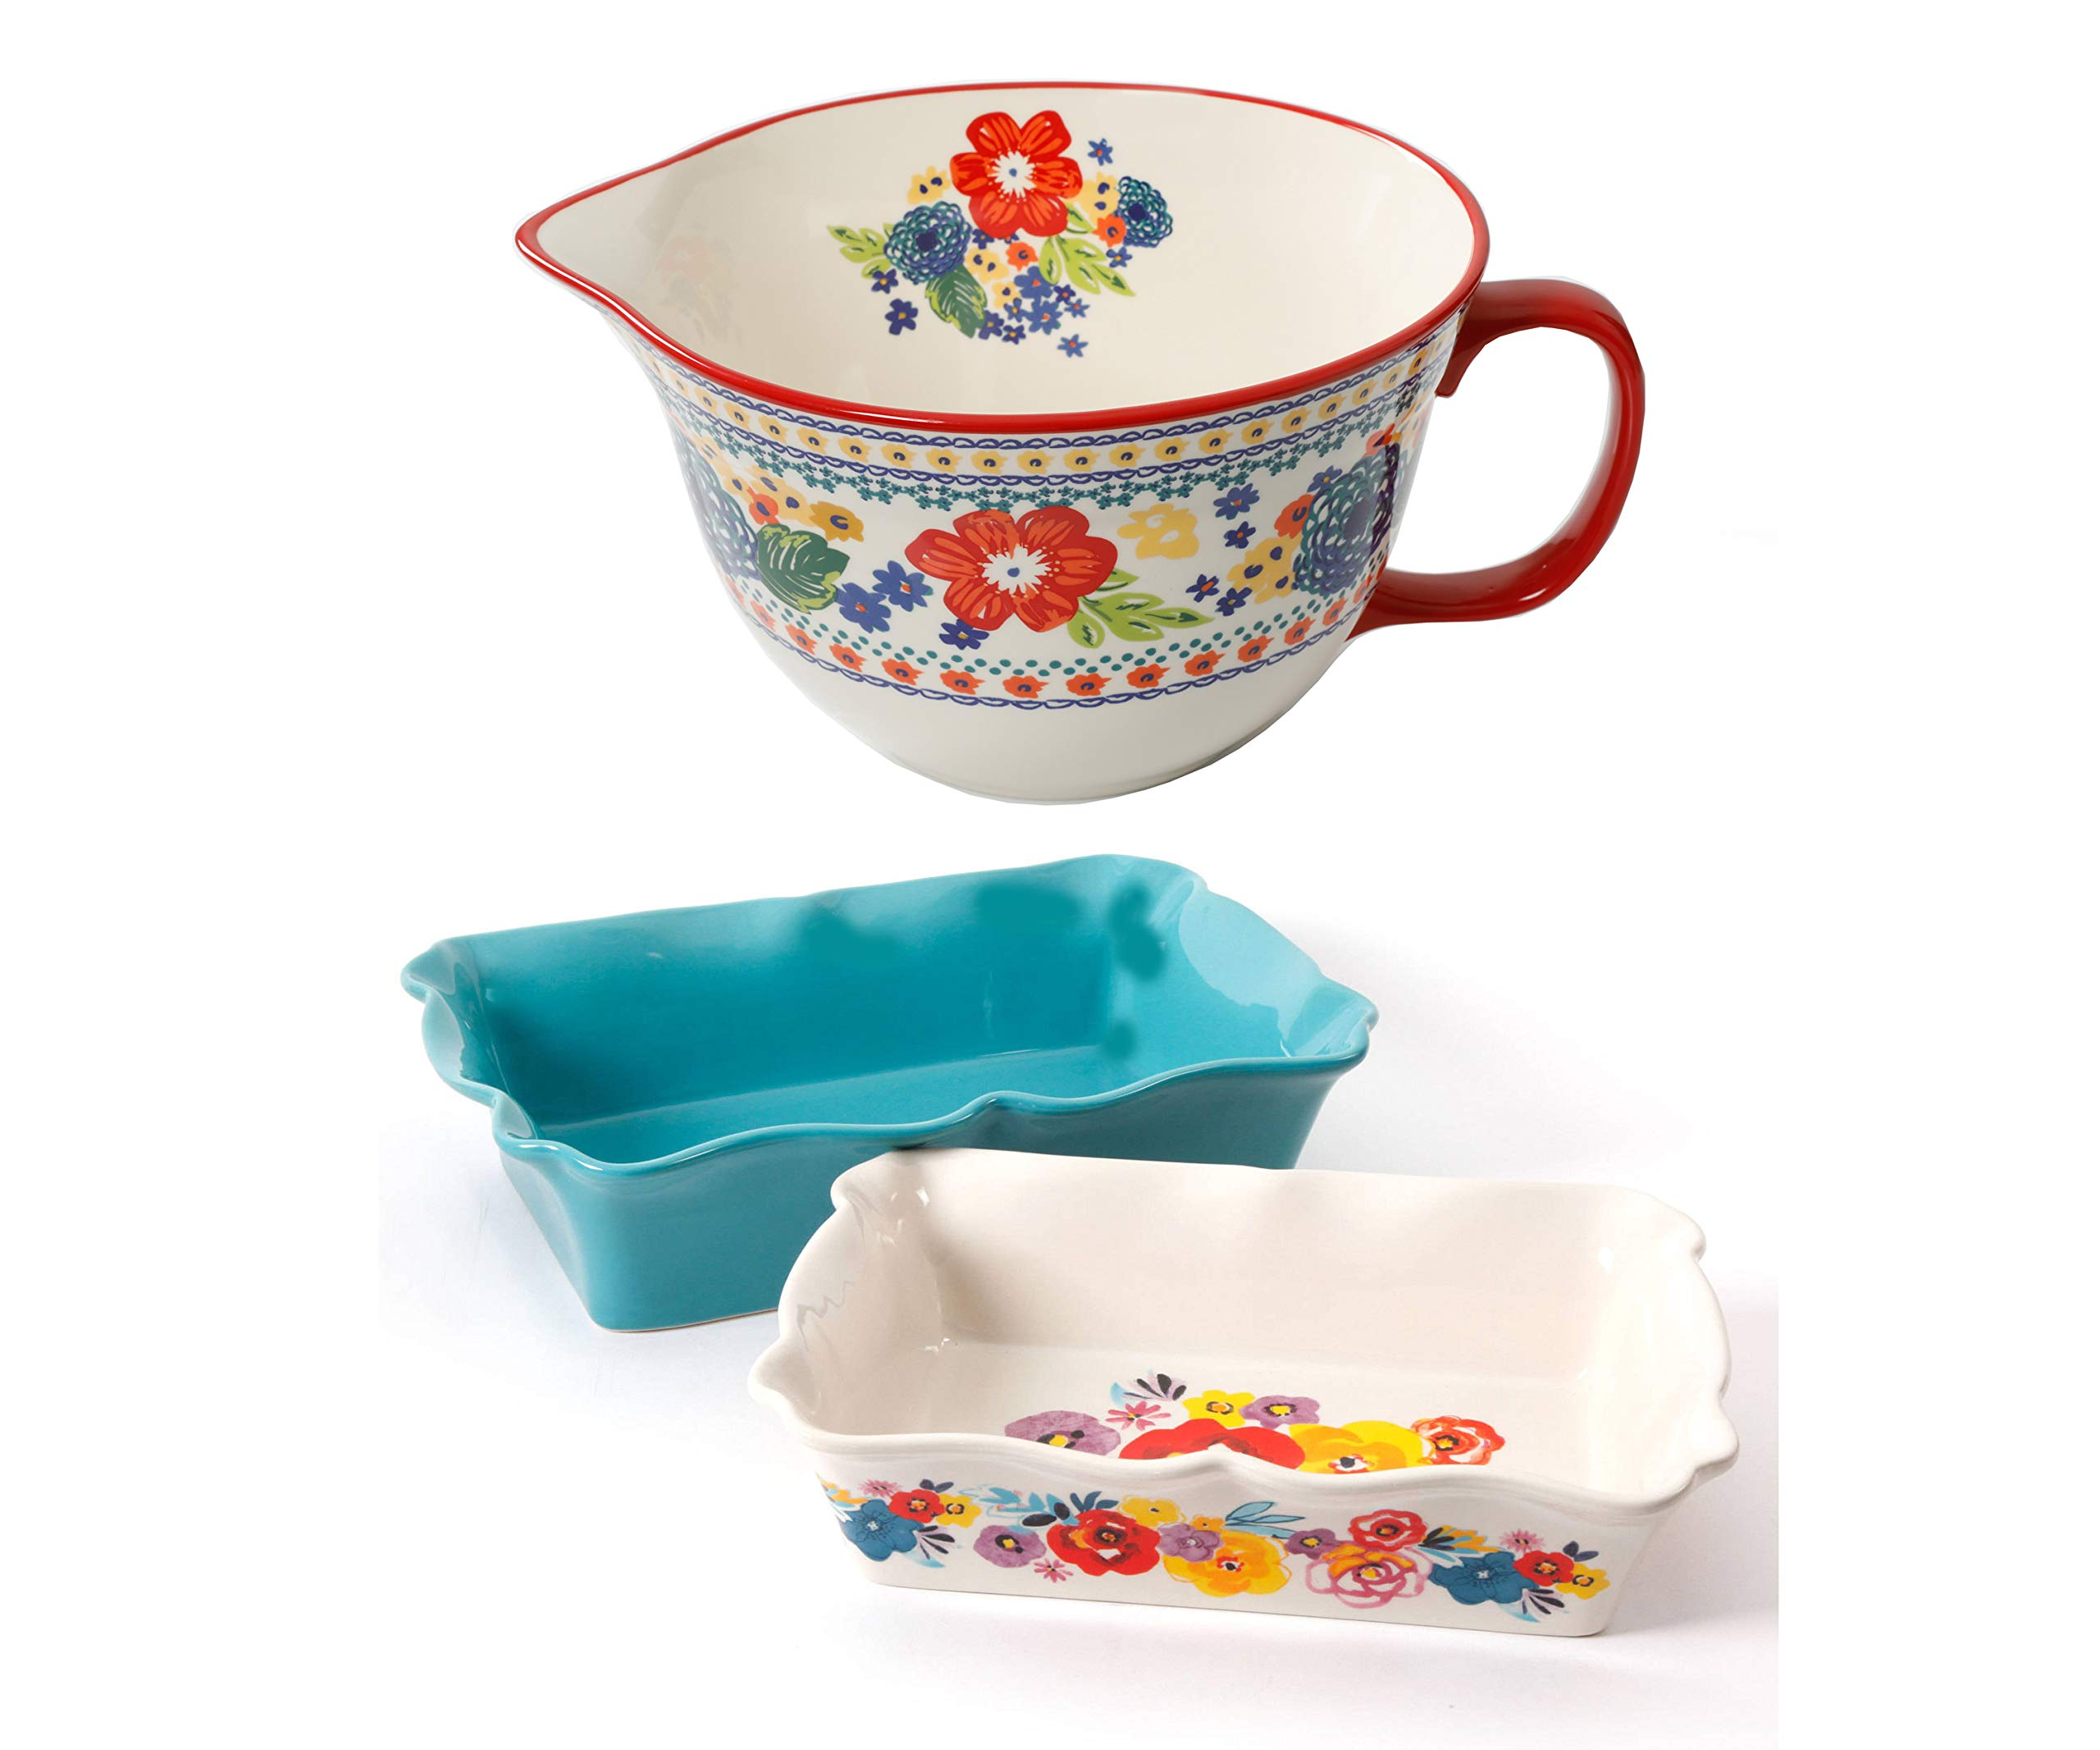 The Pioneer Woman 3.3 Quart Dazzling Dahlias Batter Bowl, 1-Piece bundle with The Pioneer Woman 2-Piece Rectangular Ruffle Top Ceramic Bakeware Set''